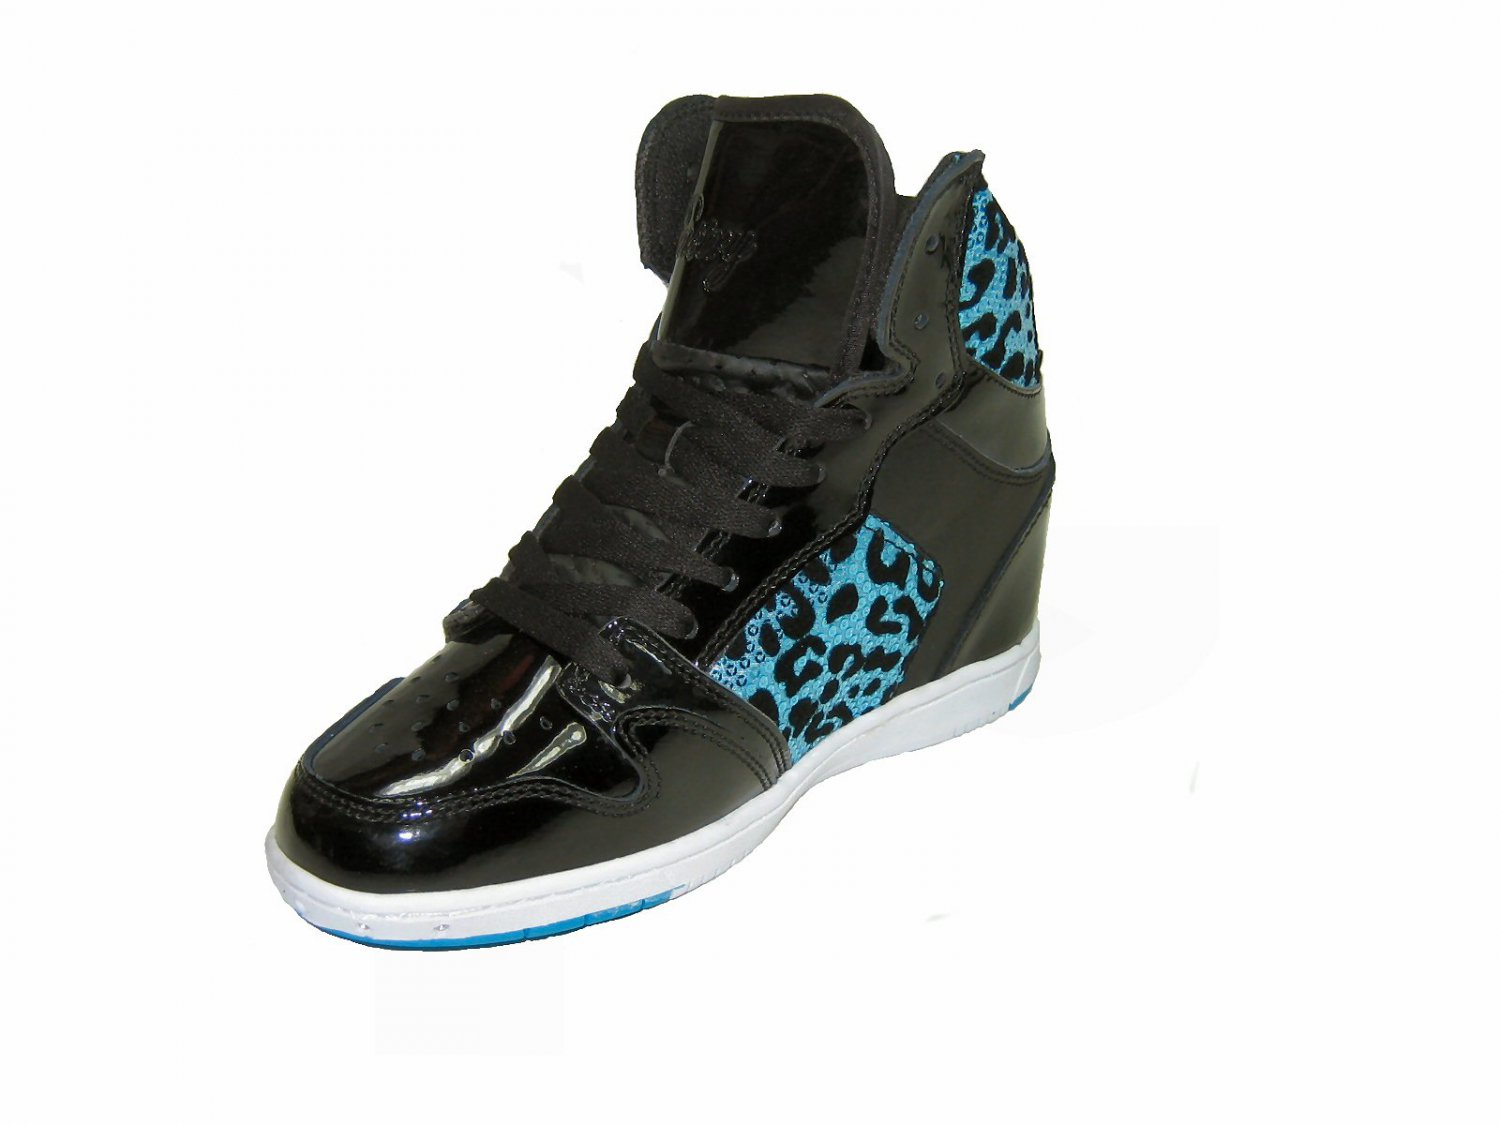 Pastry Glam Pie women's athletic lace up high top hidden 3 inch wedge sneakers black blue size 6.5